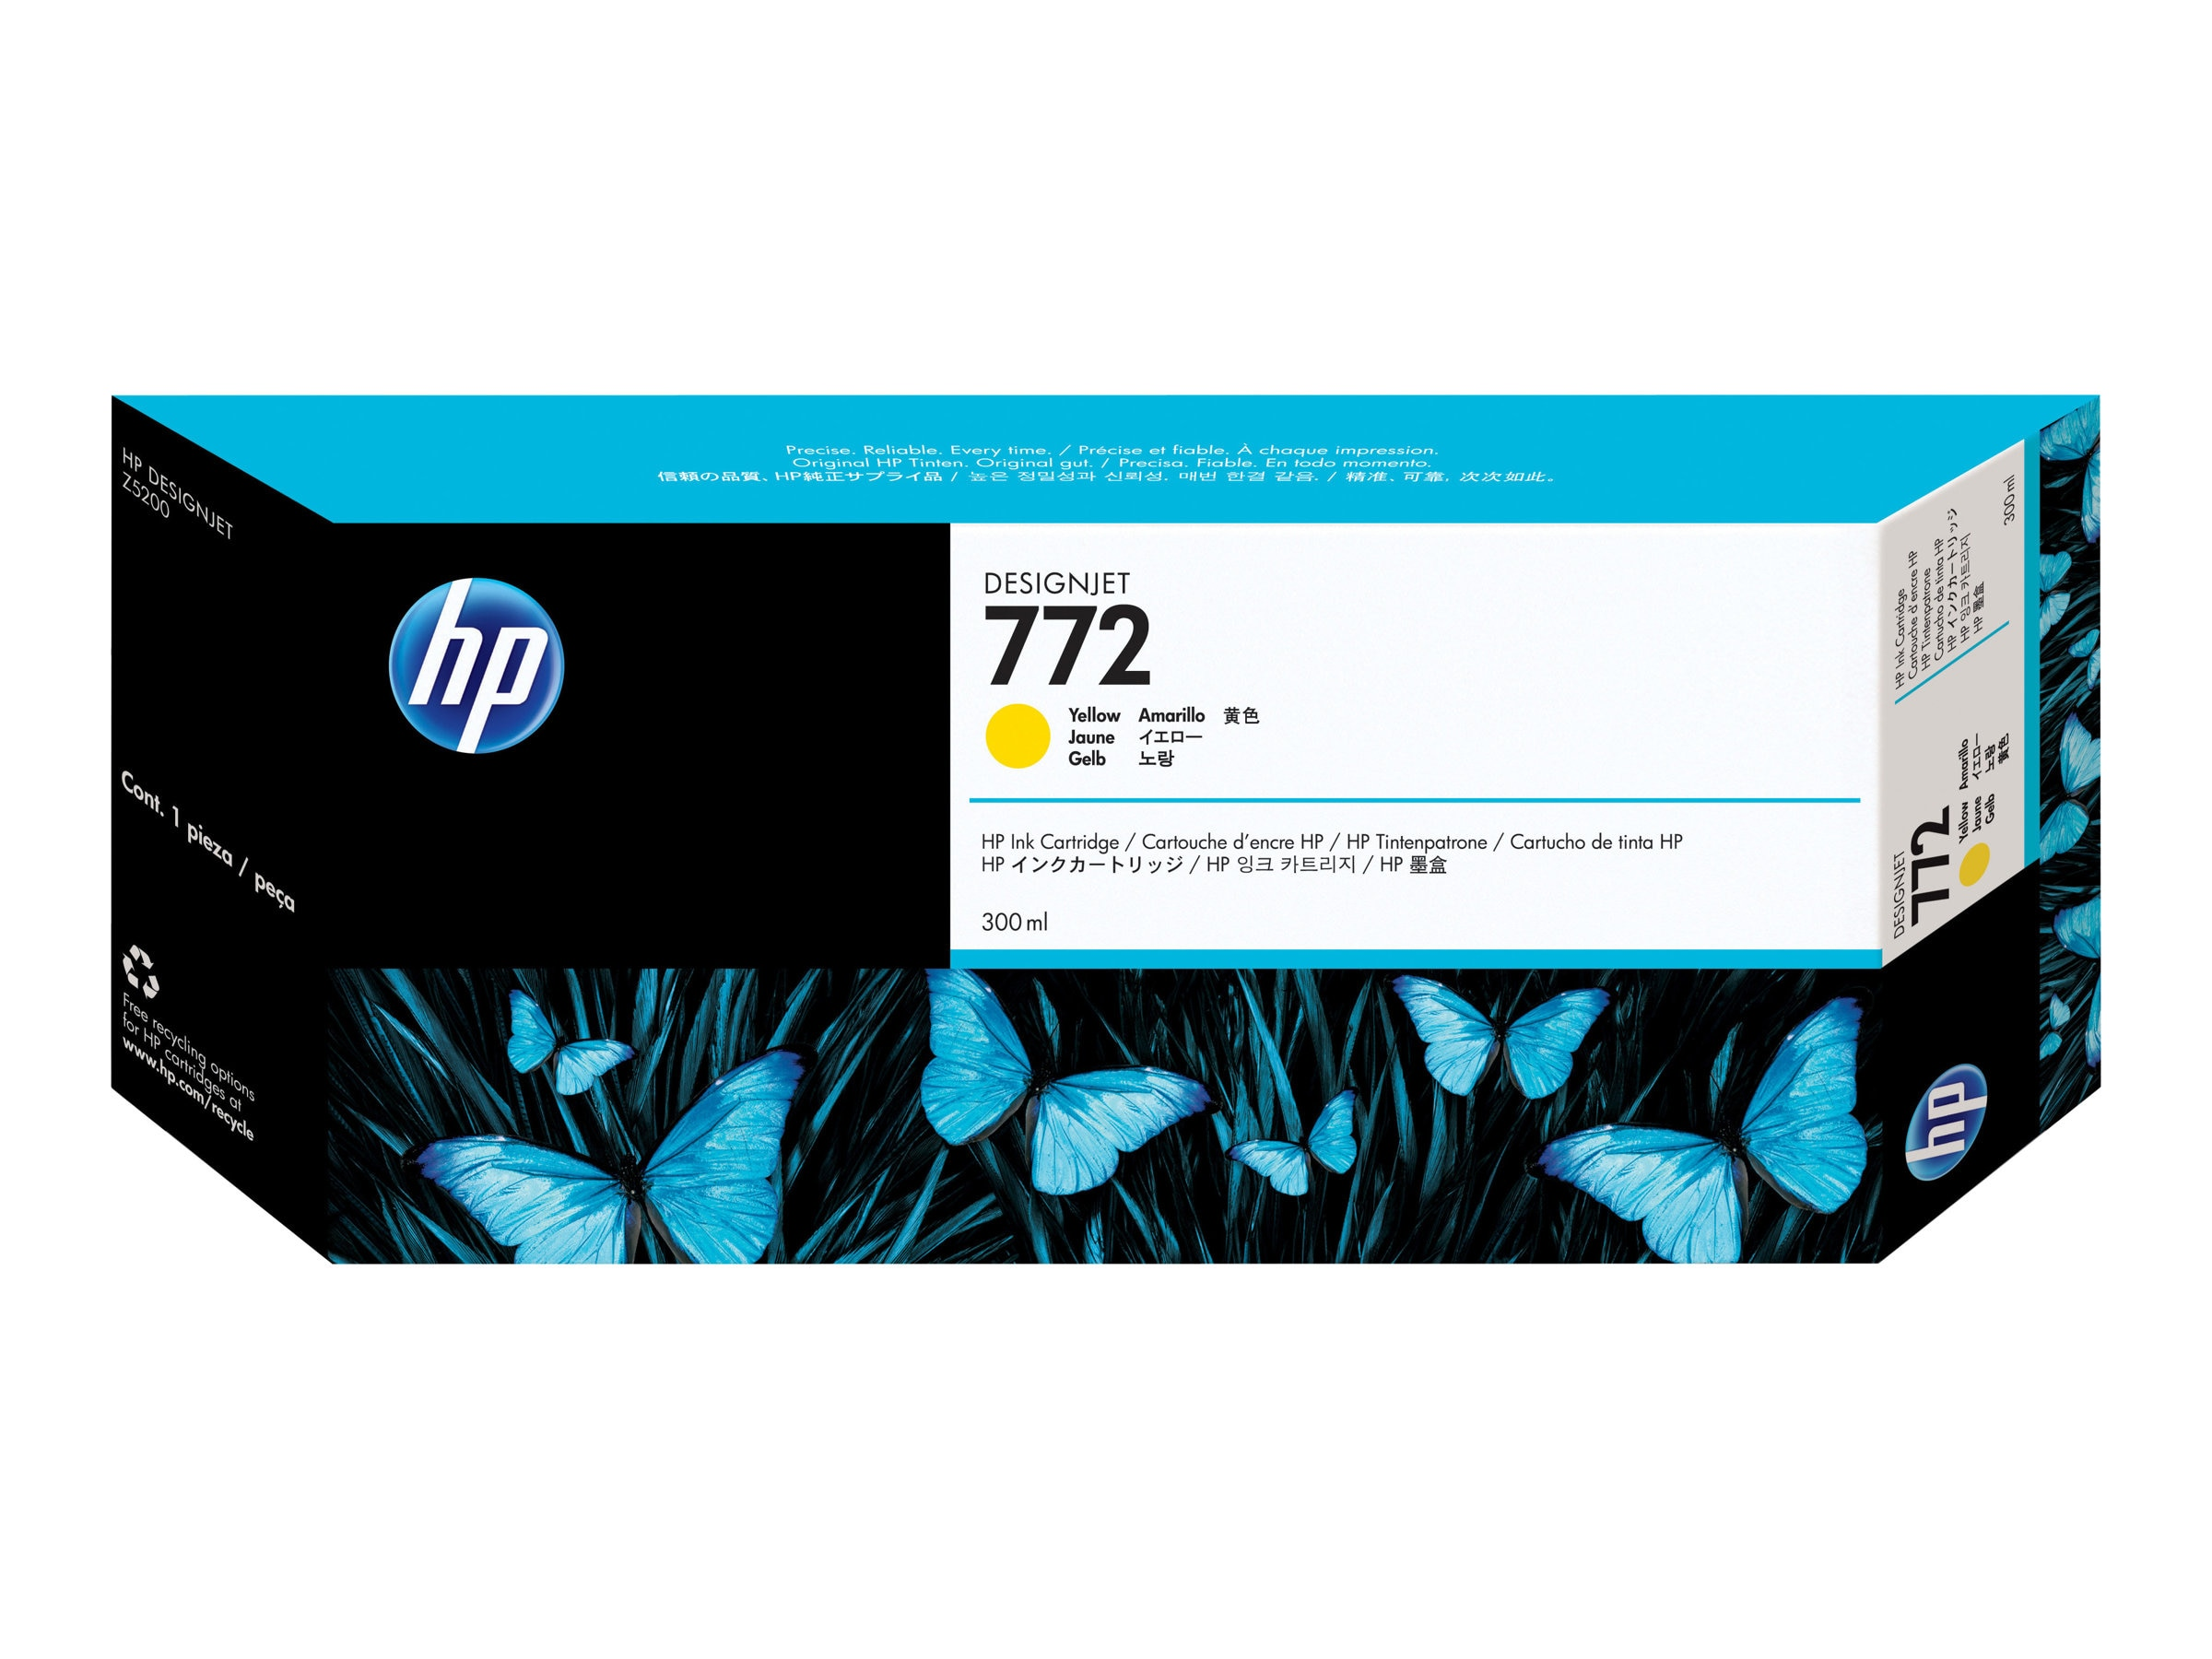 HP 772 Yellow 300ml Ink Cartridge